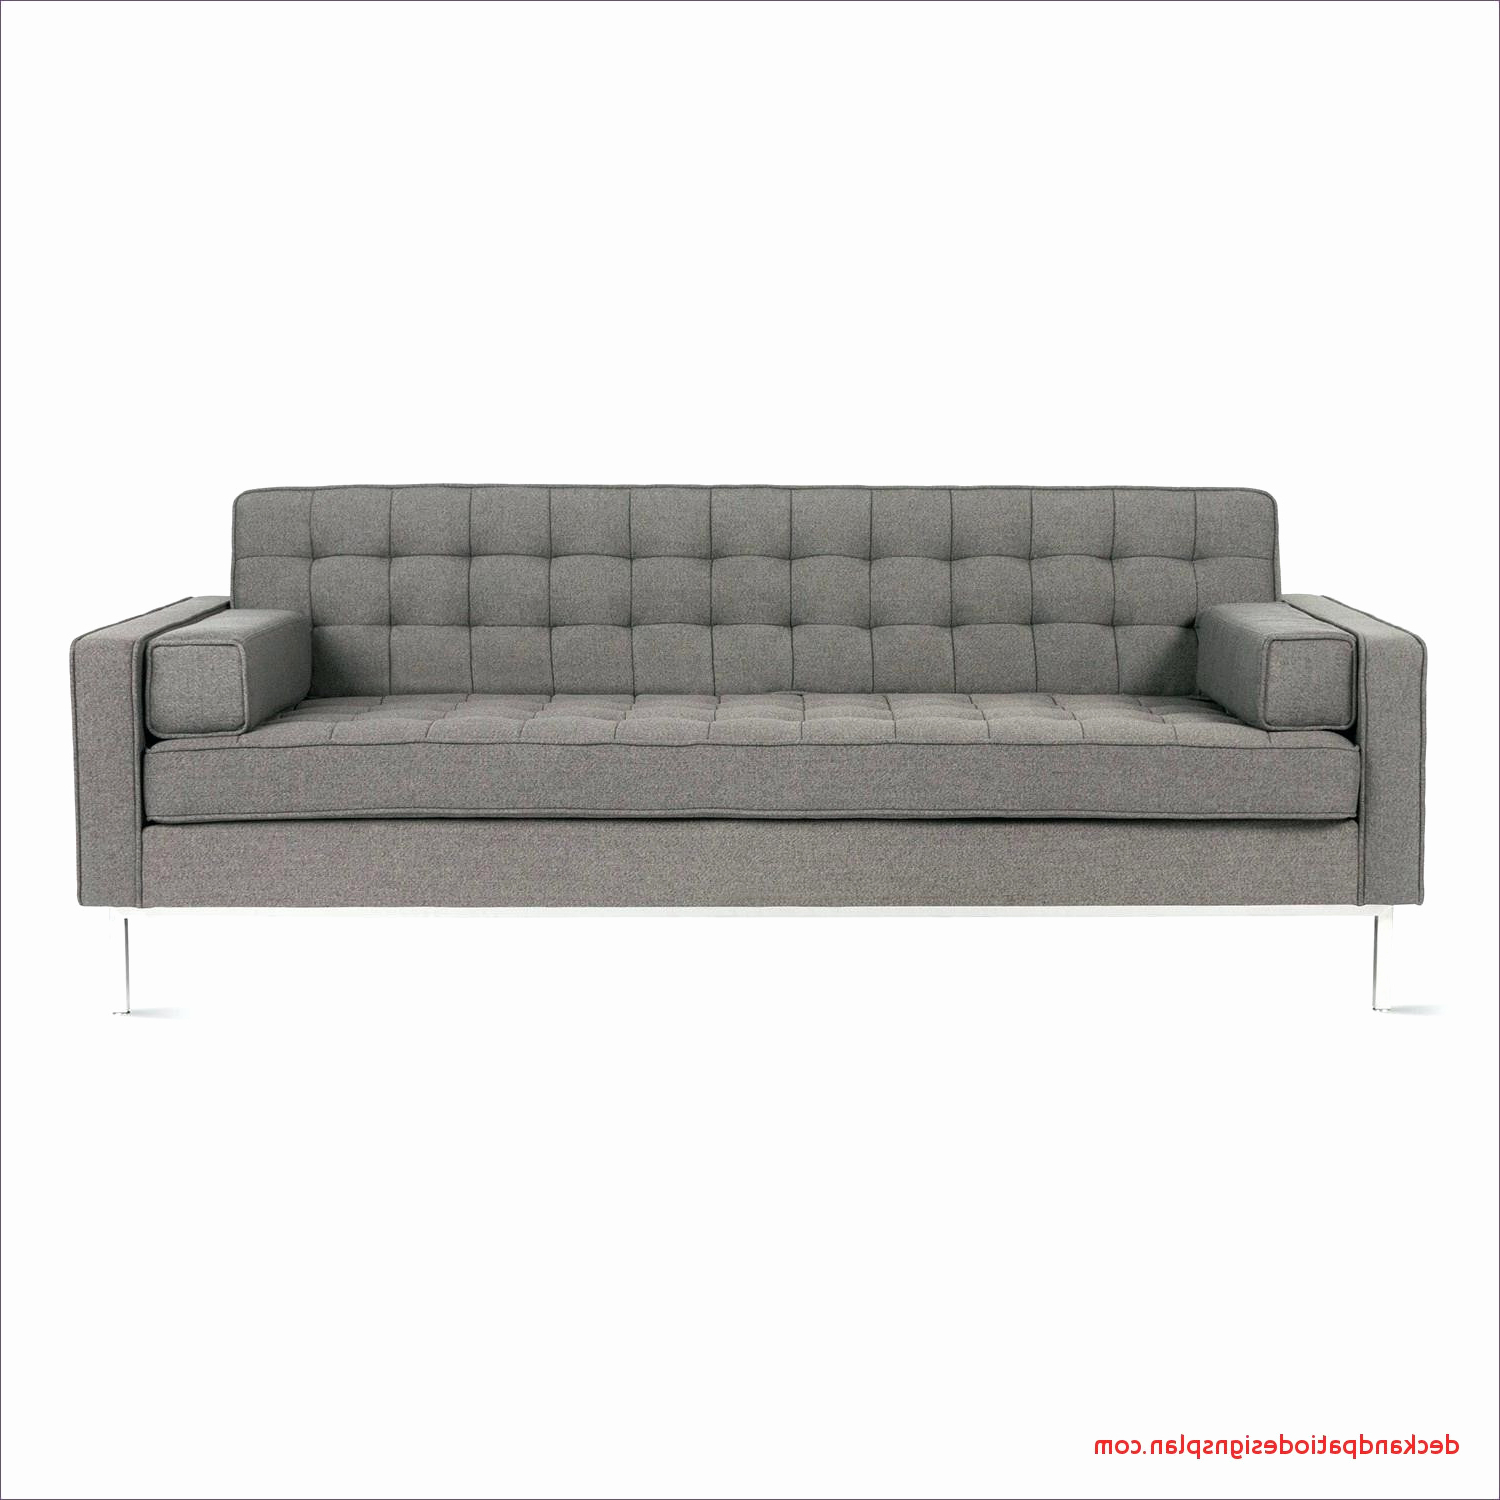 27 Best Of The Smart Sofa Reviews Pictures – Everythingalyce Pertaining To 2019 Egan Ii Cement Sofa Sectionals With Reversible Chaise (View 1 of 20)